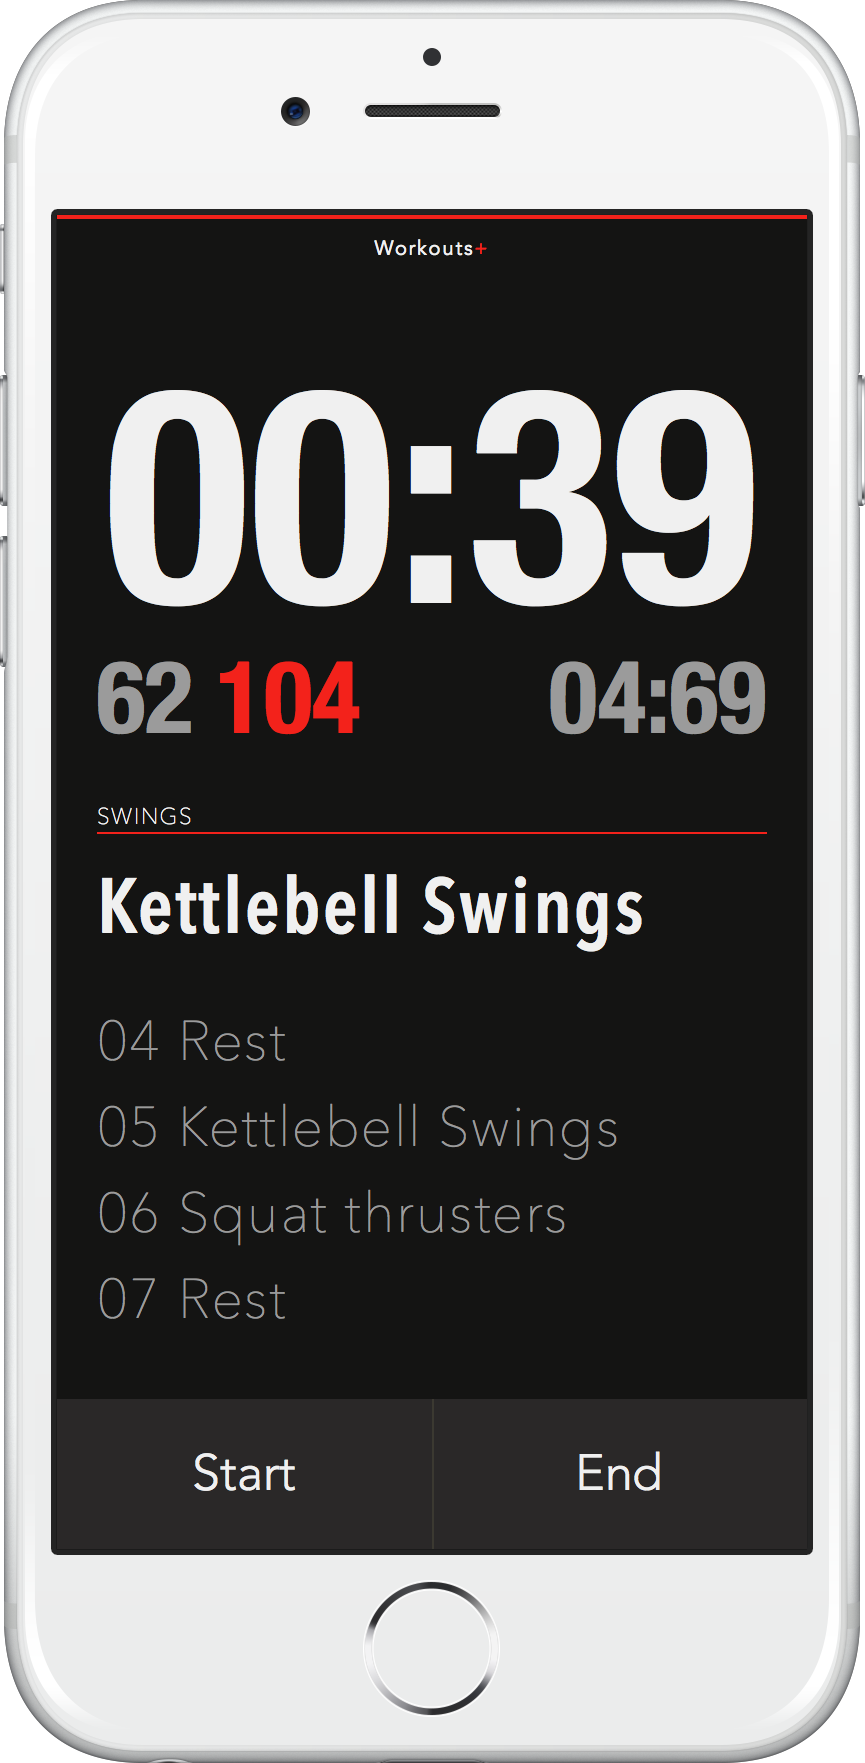 Intervals+ Interval Timer app for iOS